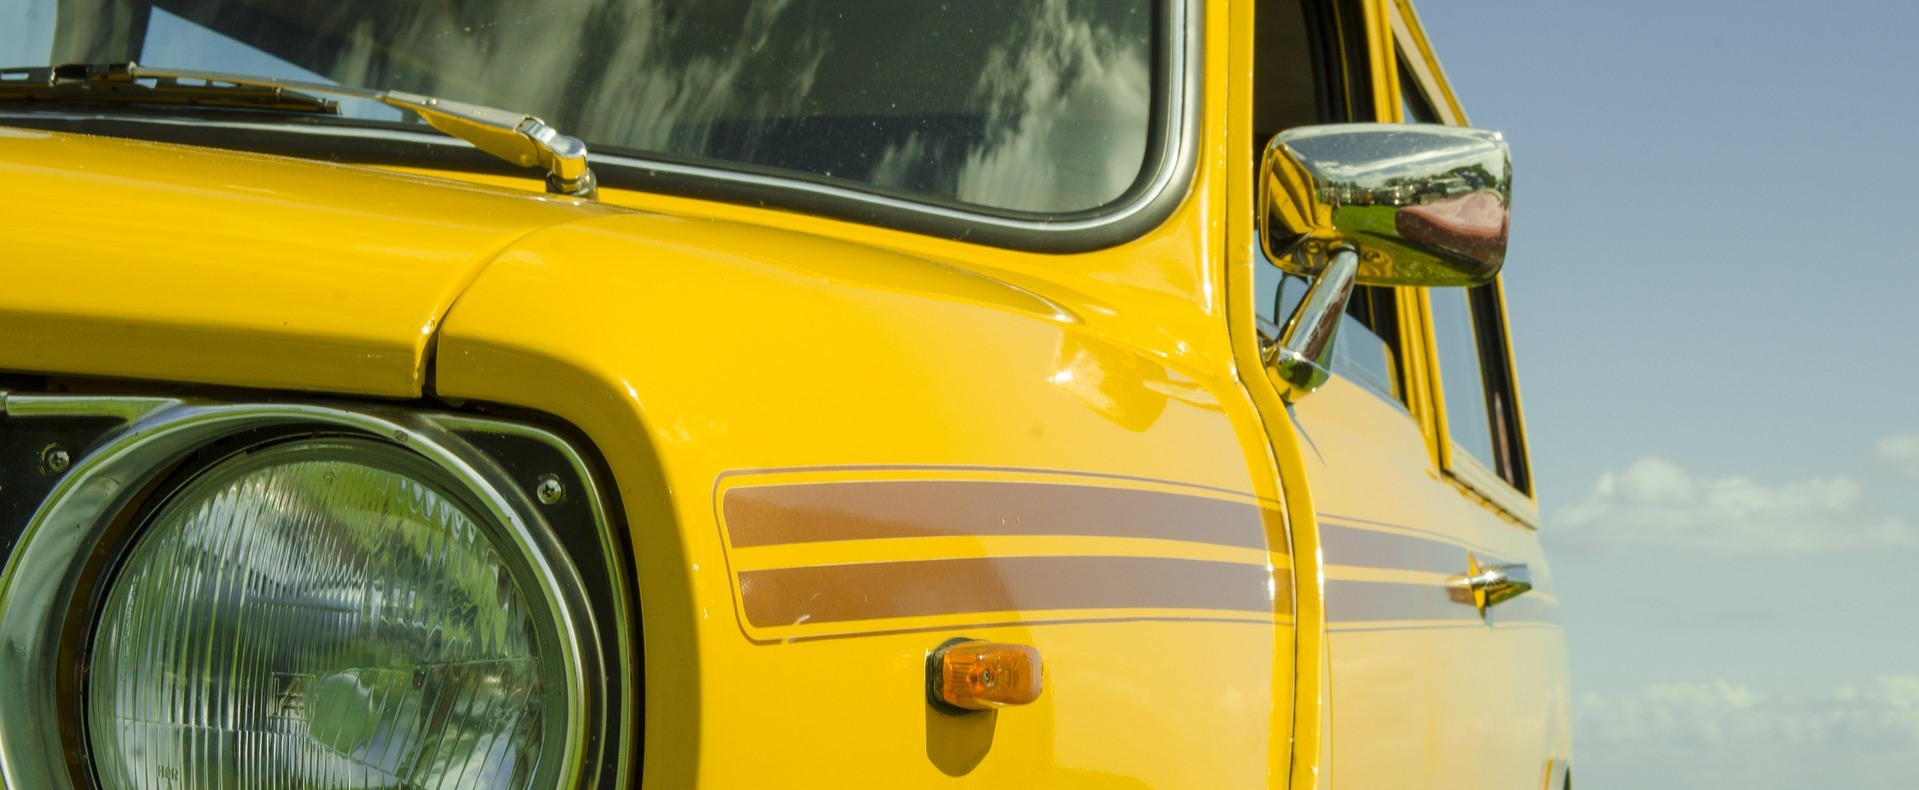 Yellow Oldtimer Car in Pasadena, California | Breast Cancer Car Donations